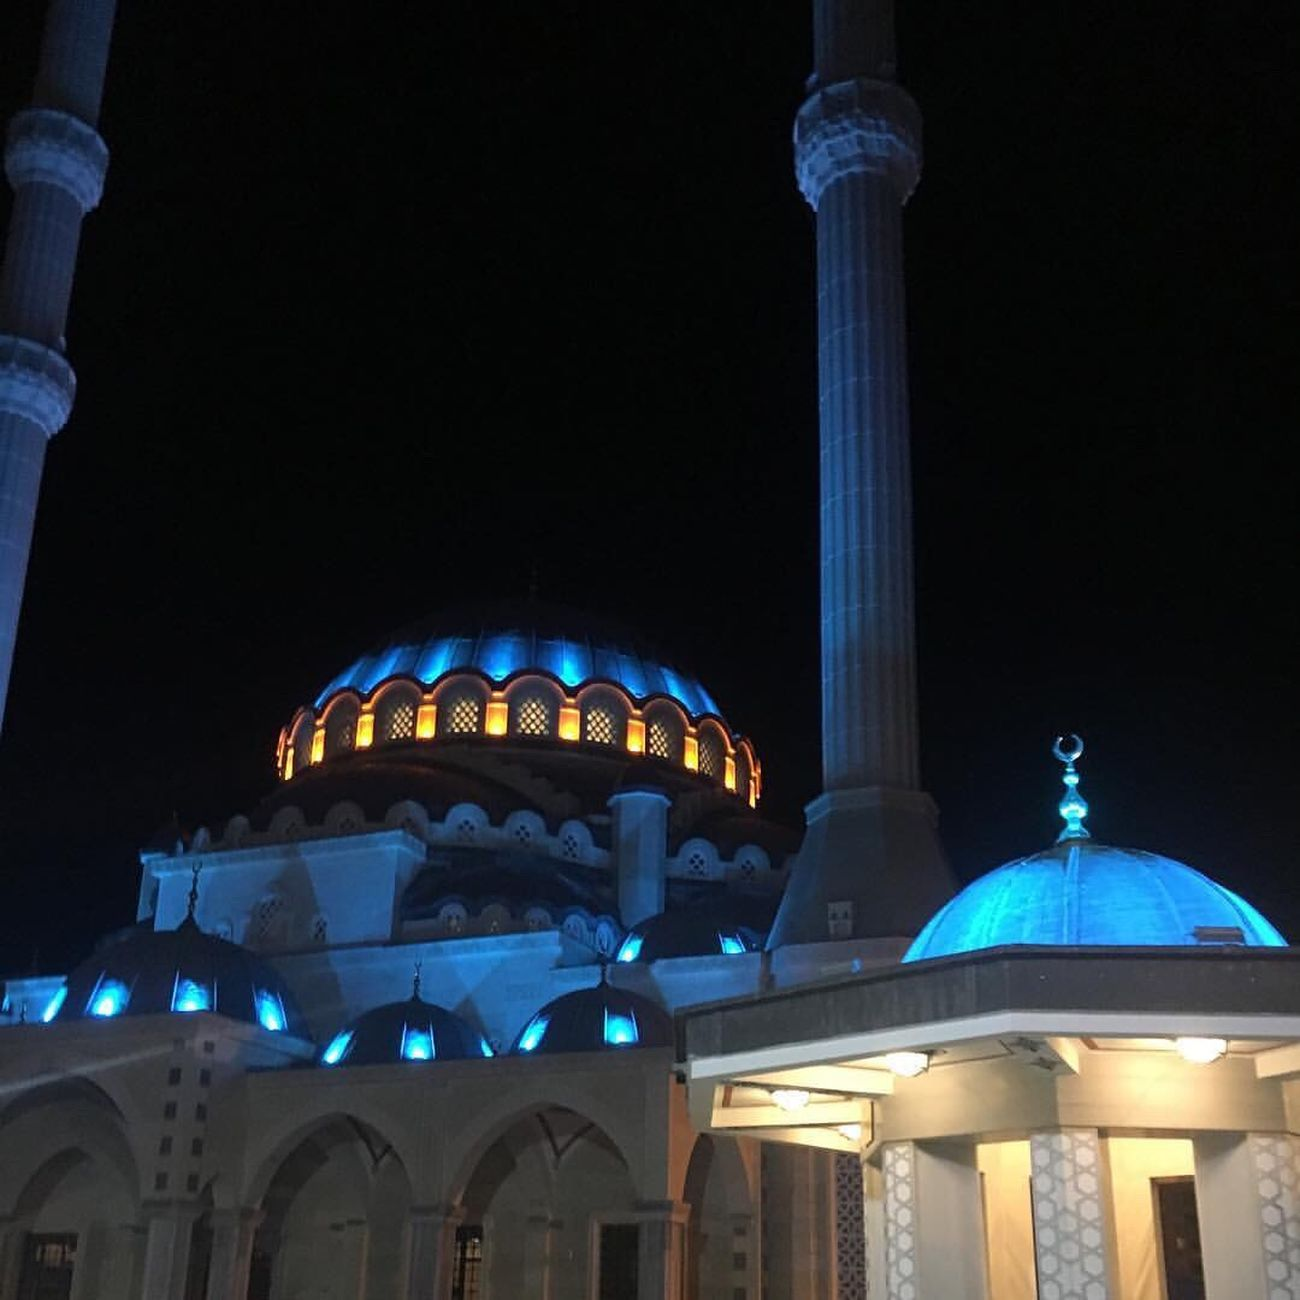 Night Illuminated Architecture City No People Built Structure Outdoors Sky Mosque Blue Traveling Travel Travel Destinations Travel Photography Kilis Türkiye